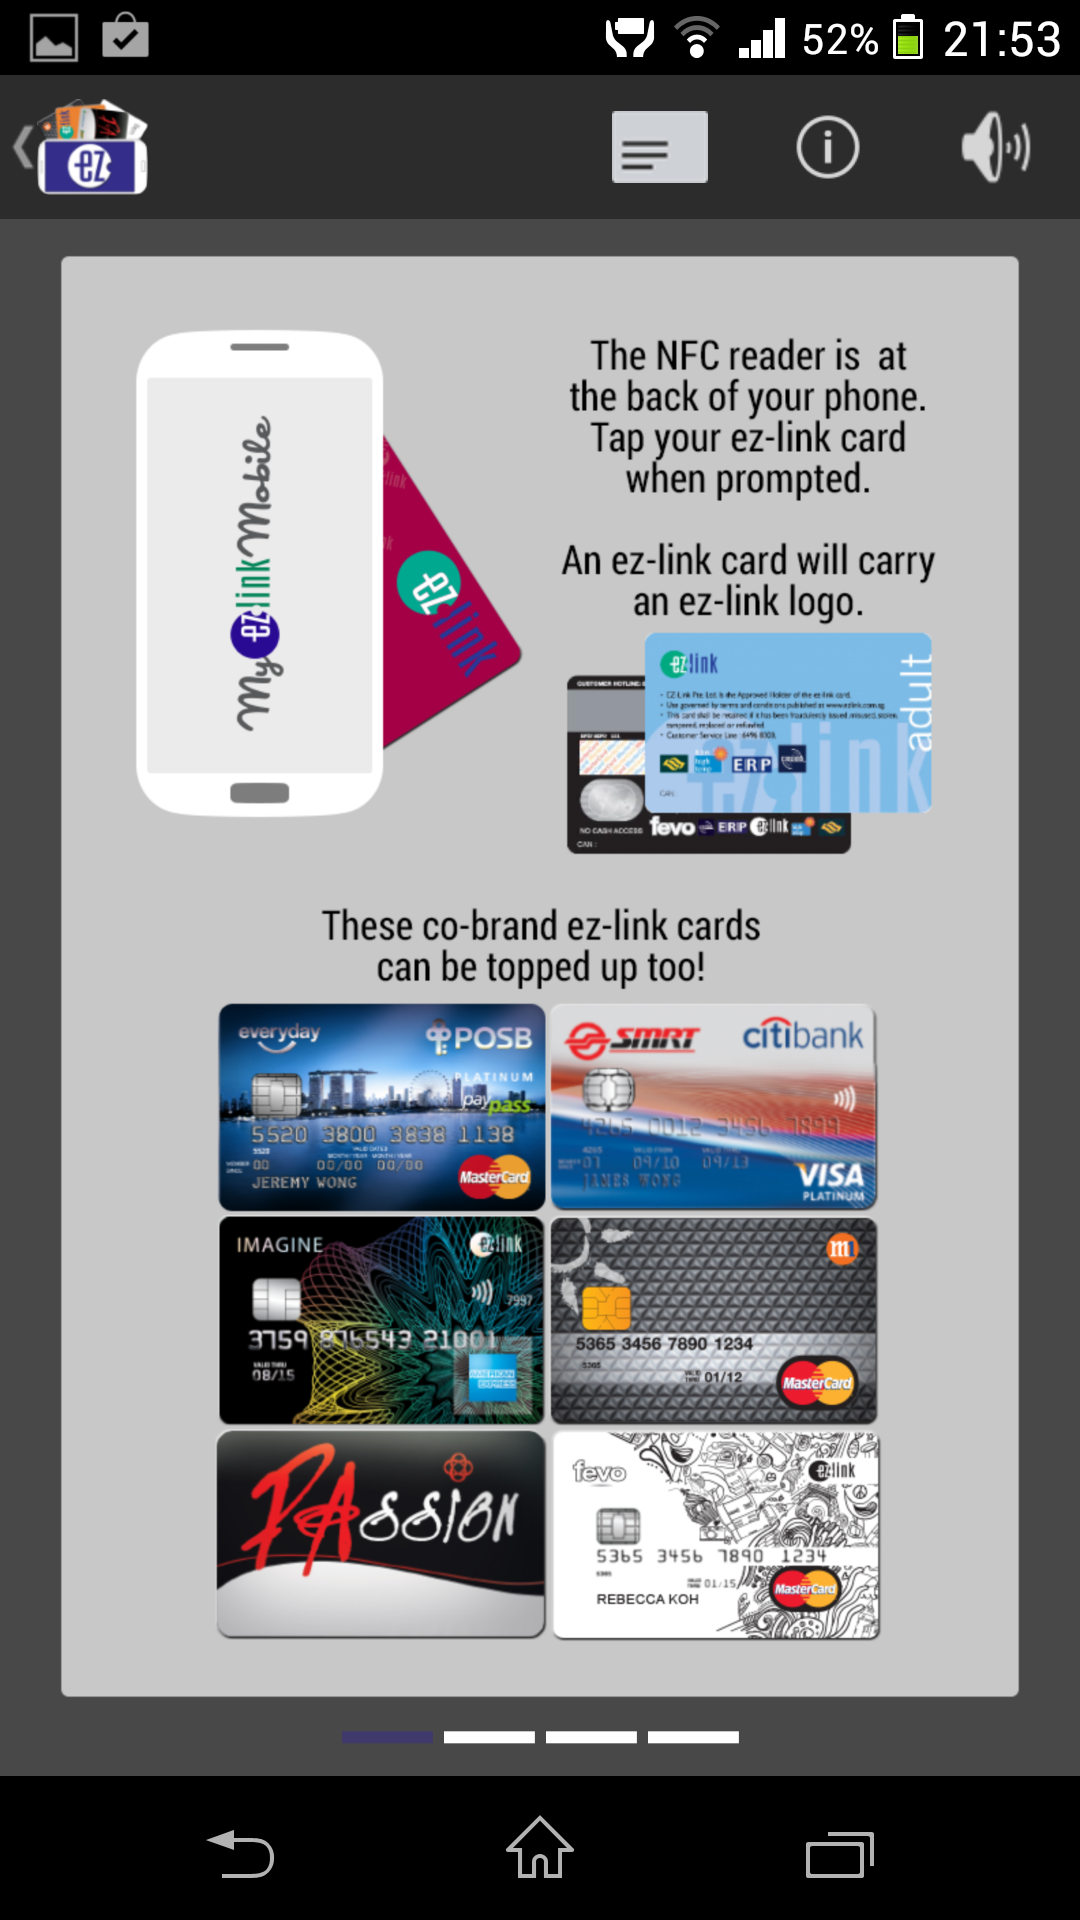 The app also supports a variety of co-brand ez-link cards.